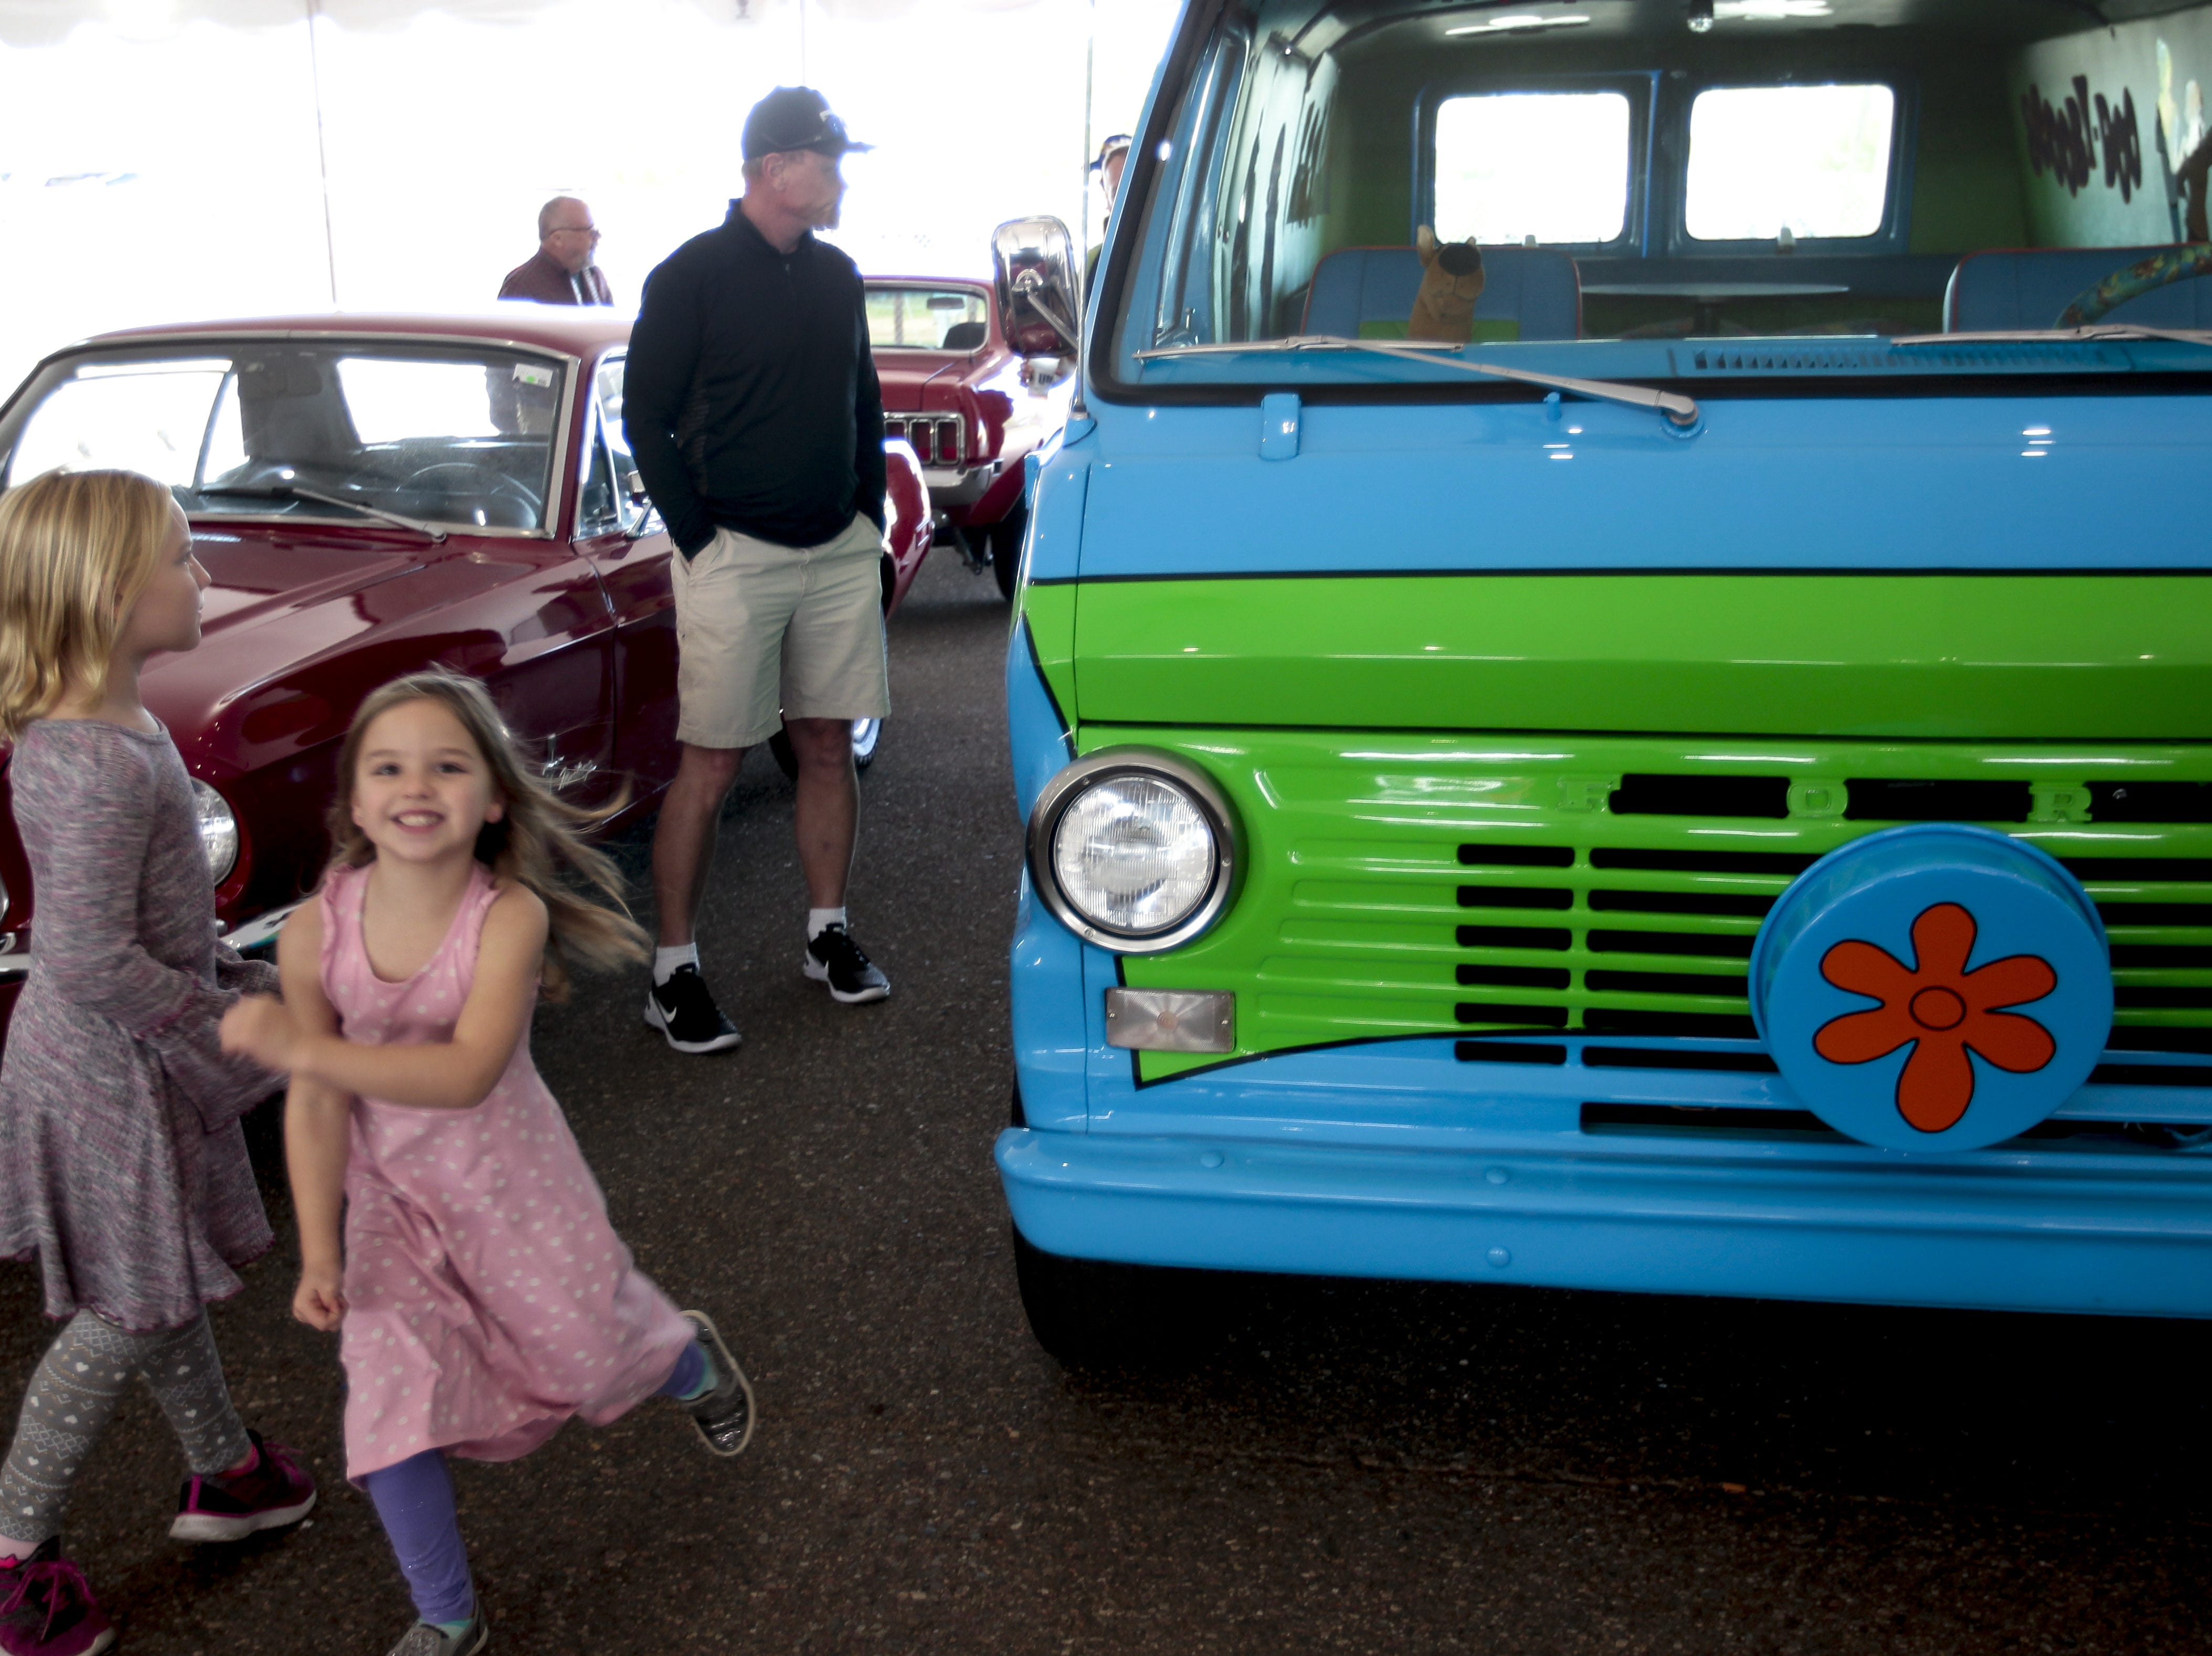 Kids run around a van that has been remodeled to look like  at the Mystery Machine from Scooby Doo at the Barrett-Jackson Car Auction on Jan. 12, the first day of the event.